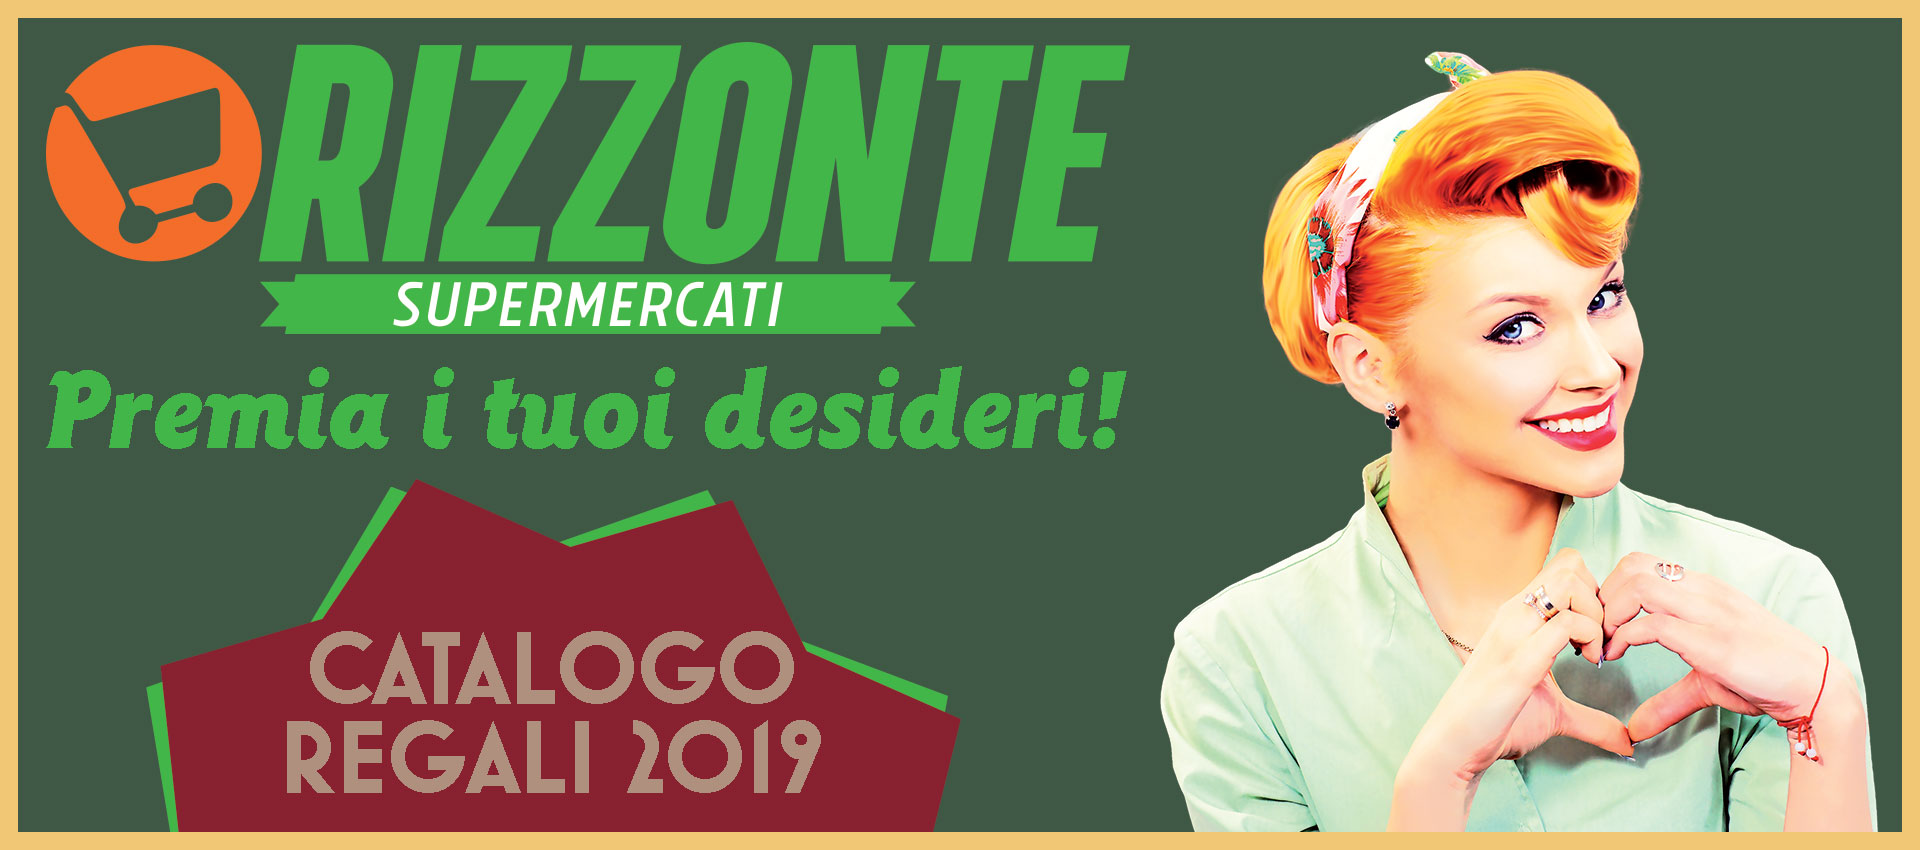 orizzonte-supermercato-catalogo-regali